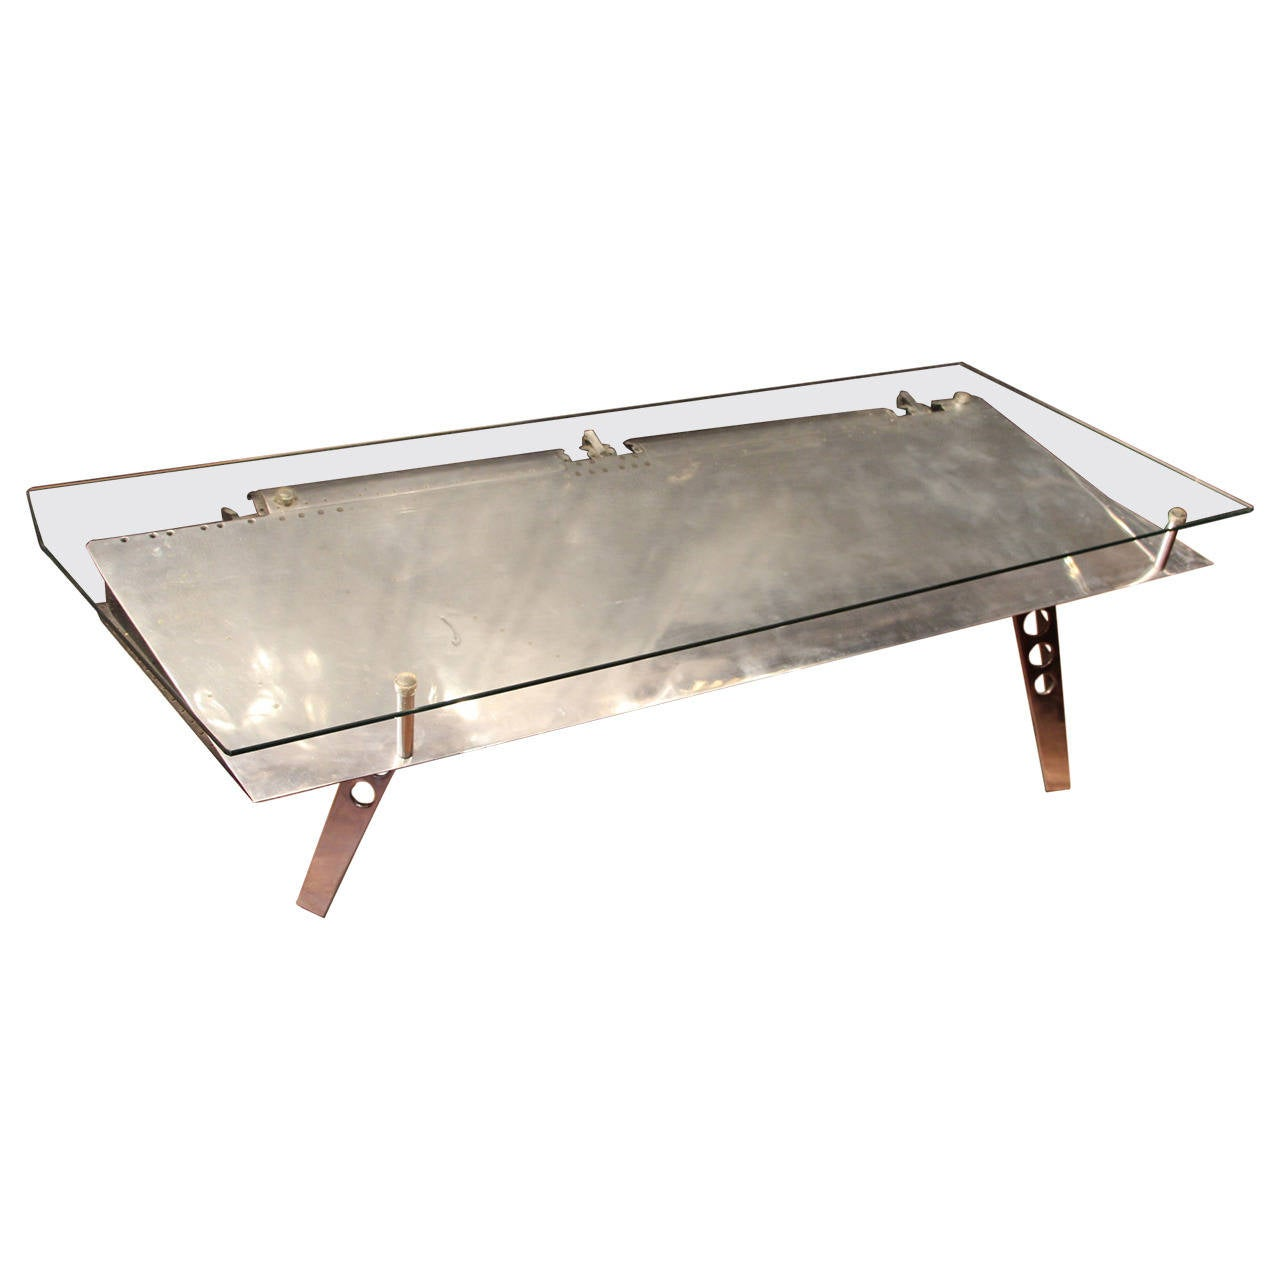 Polished Aluminum And Glass Aviation Coffee Table For Sale At 1stdibs